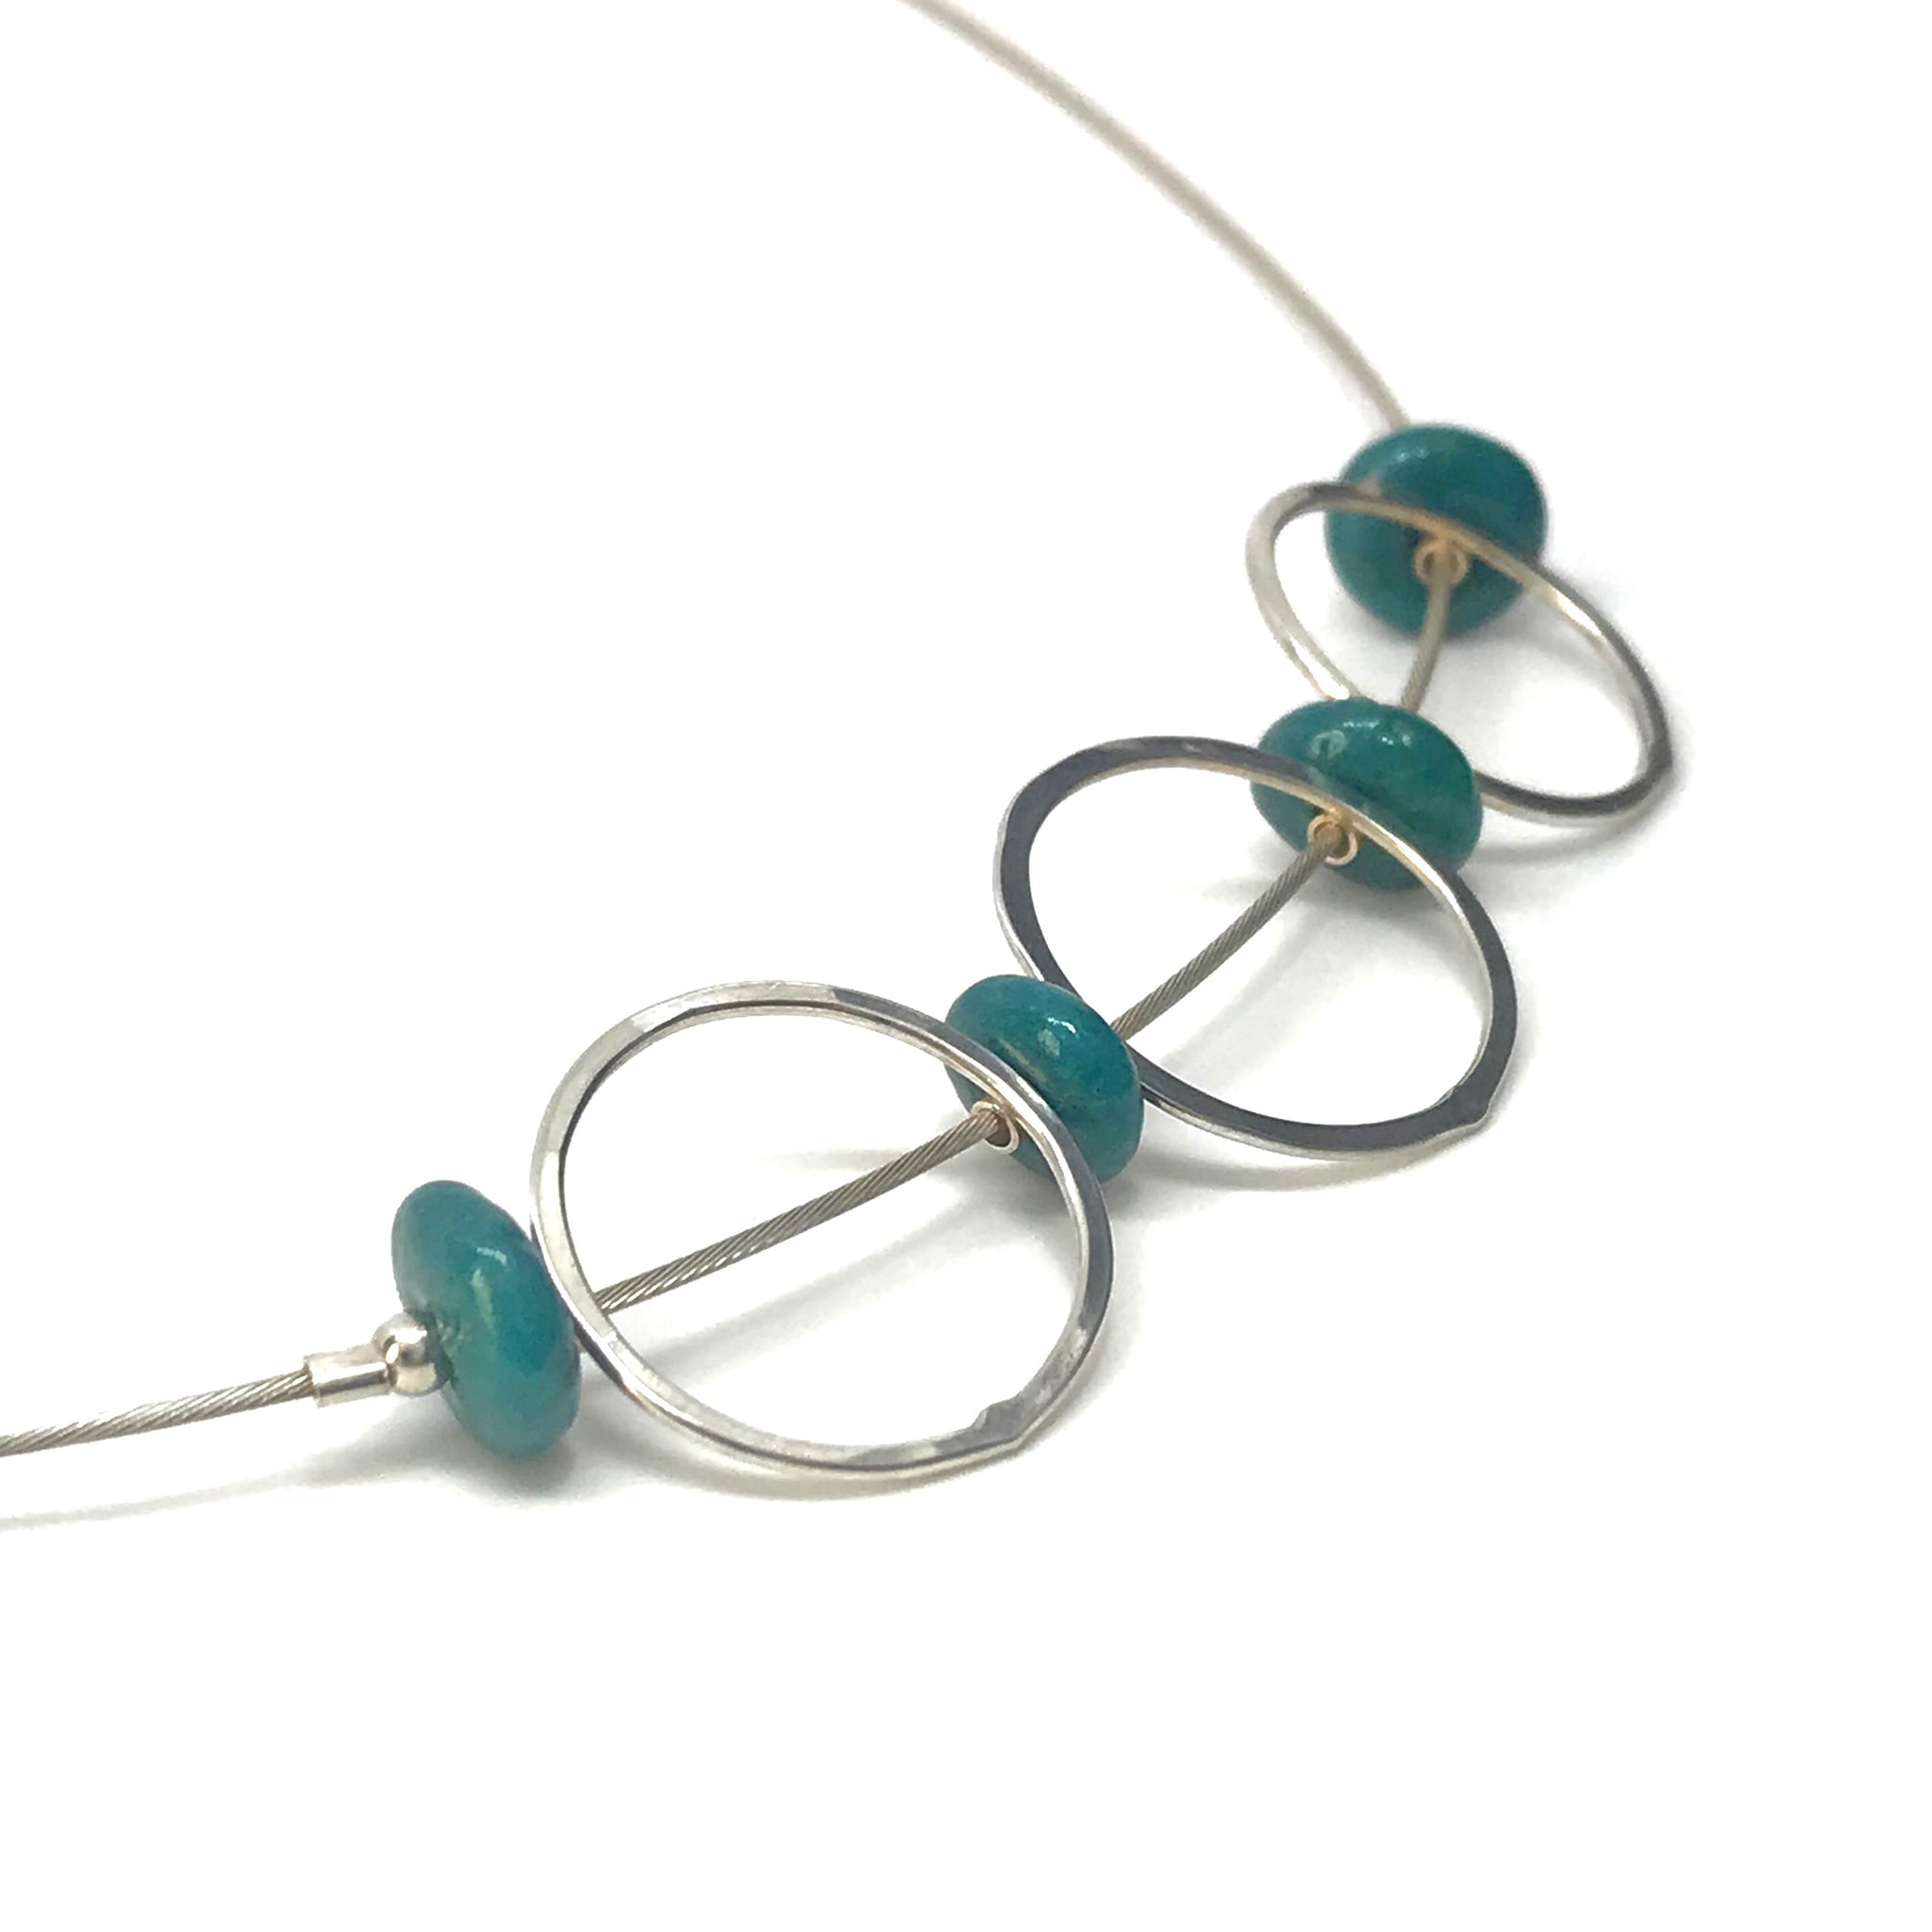 Silver Necklace with Green Ceramic Beads and Matte Hammered Hoops - kriket-broadhurst jewellery